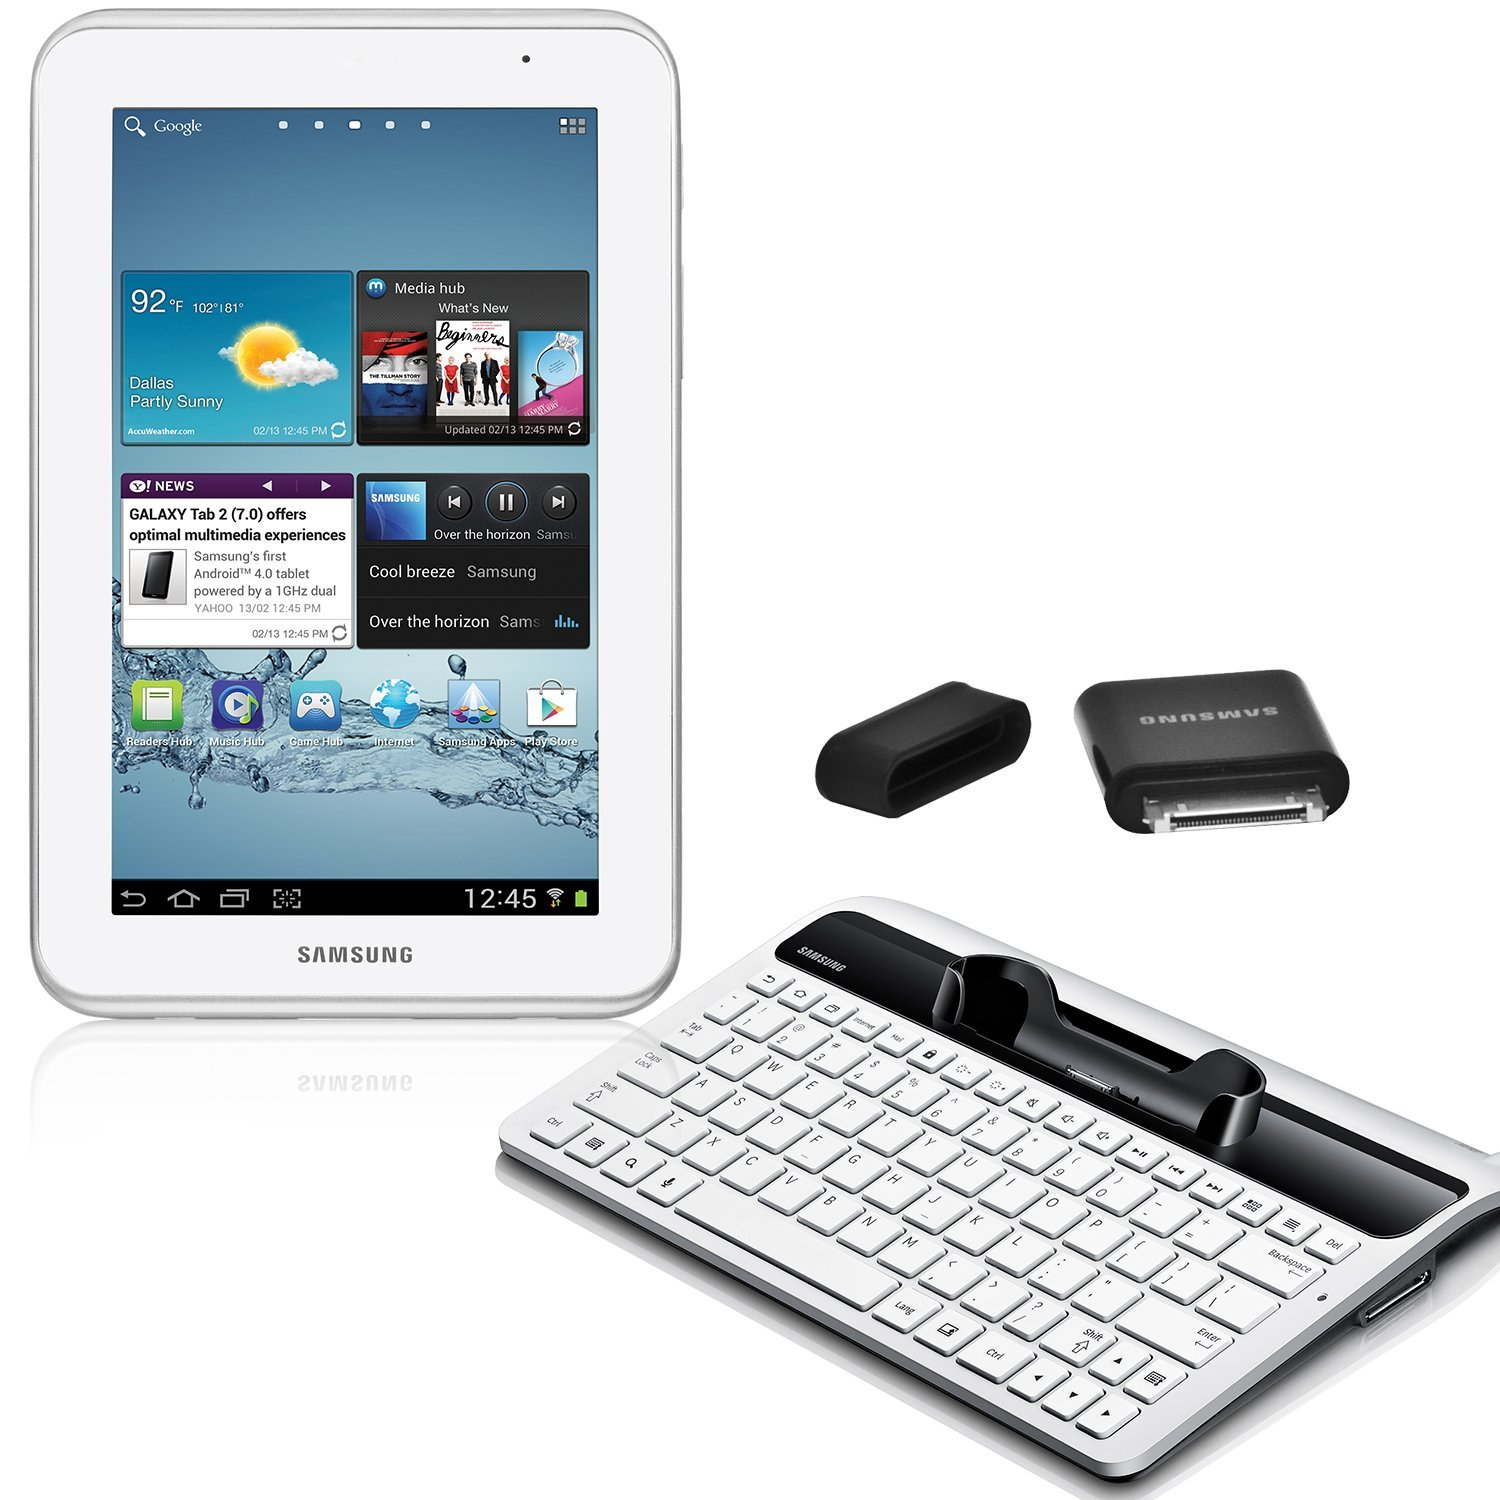 Samsung galaxy tab 2 7 0 student bundle now available for for Tablet samsung con porta usb